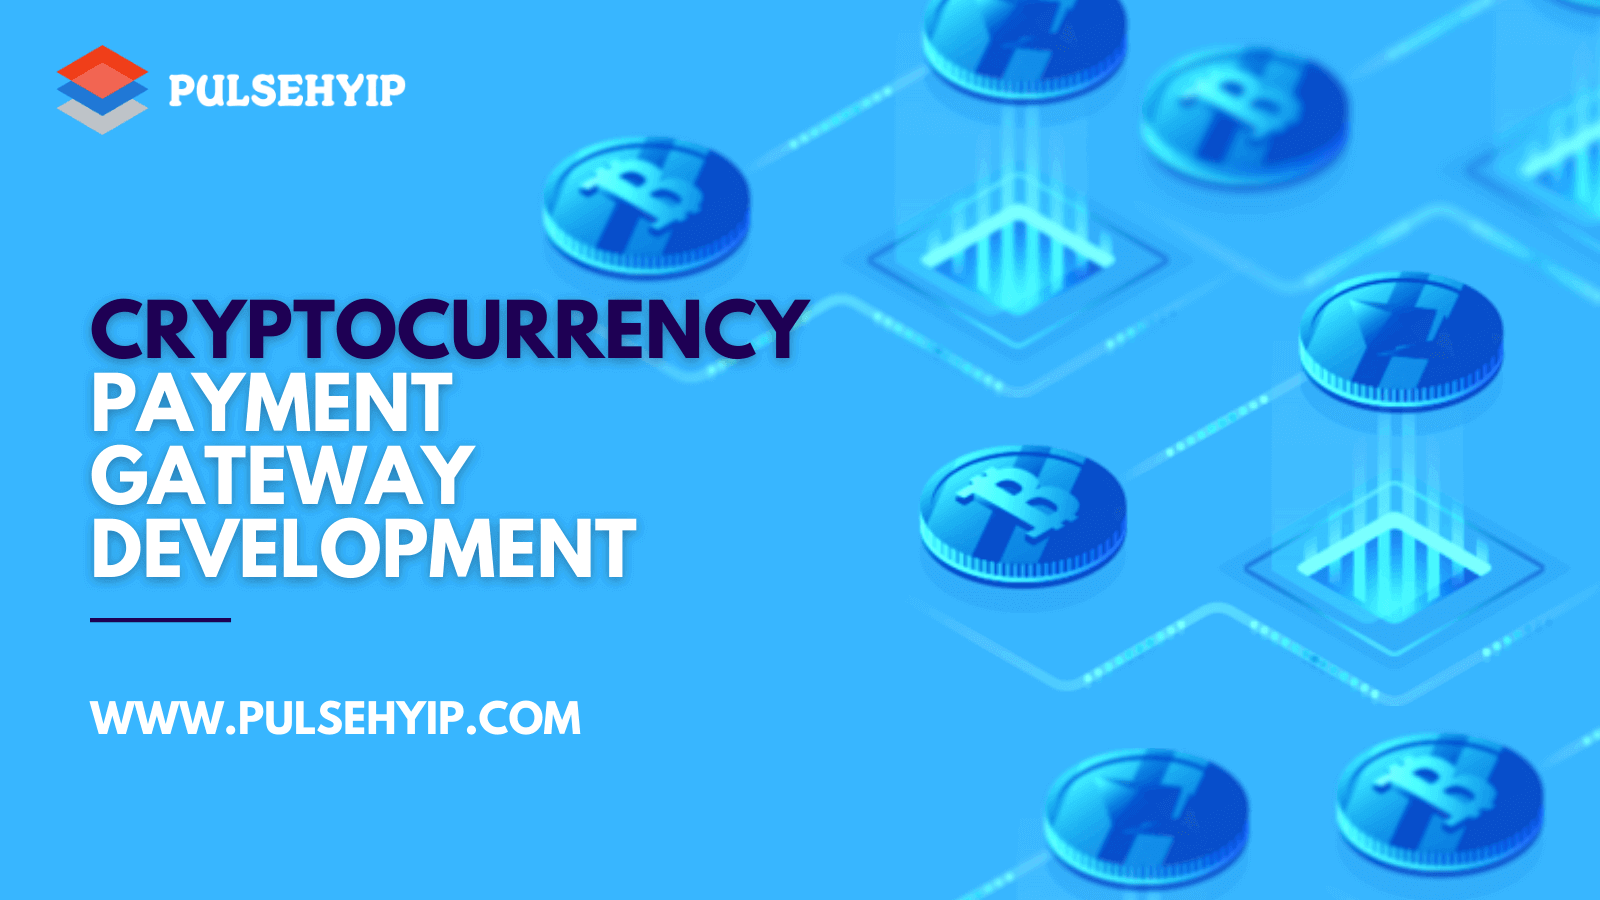 Cryptocurrency Payment Gateway Development Company for End to End Crypto Payment Gateway Solutions